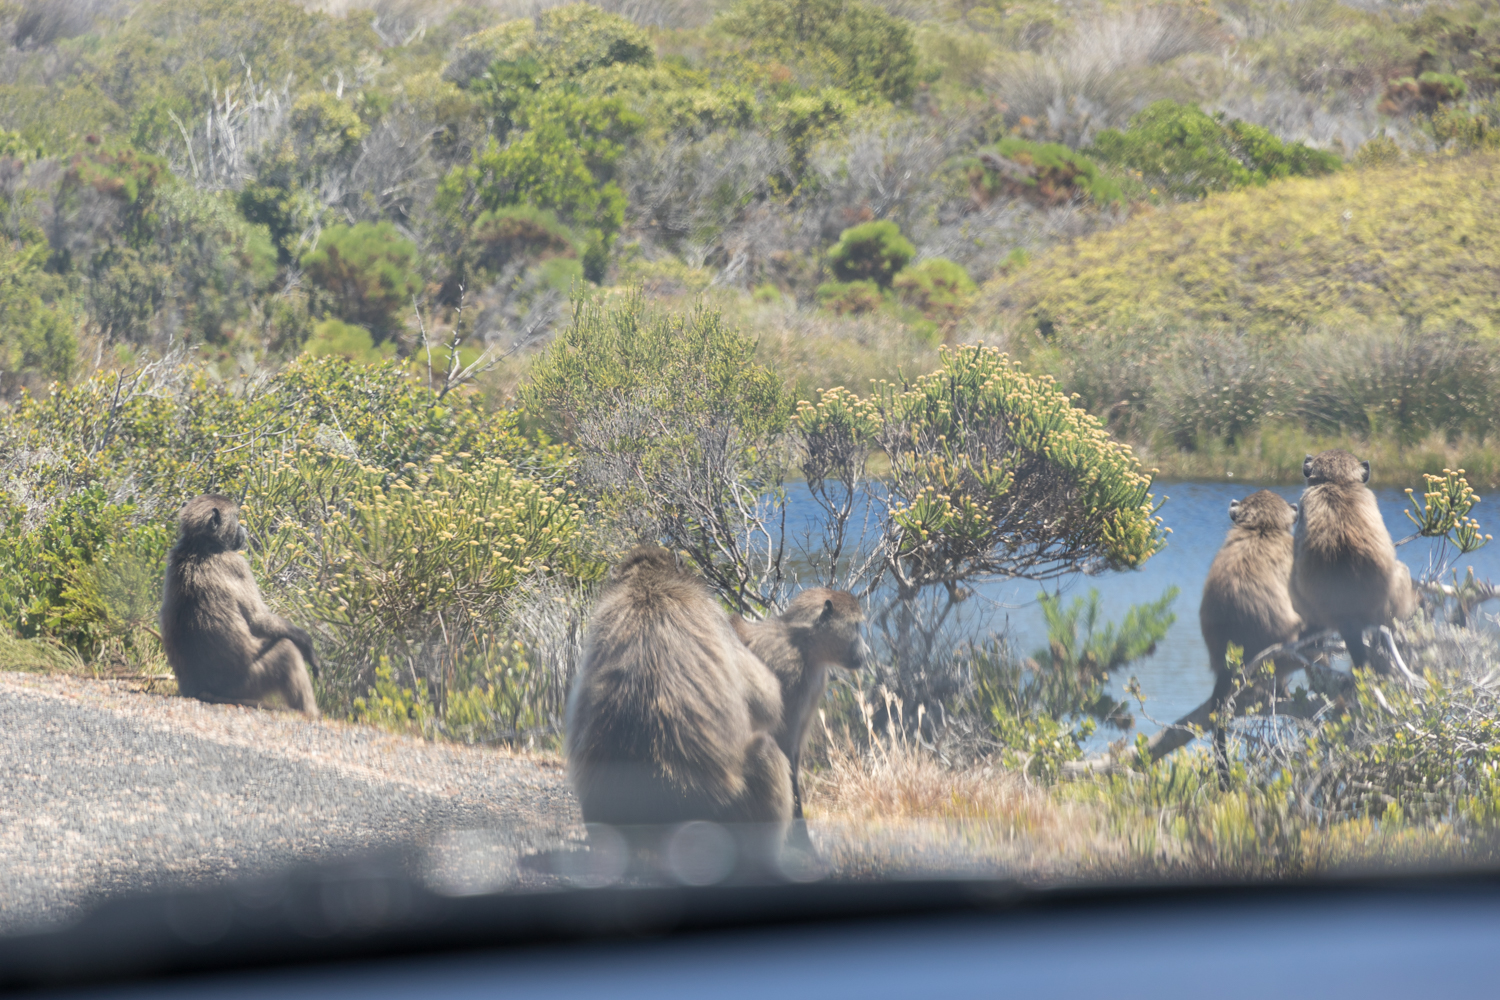 family of baboons on the roadside